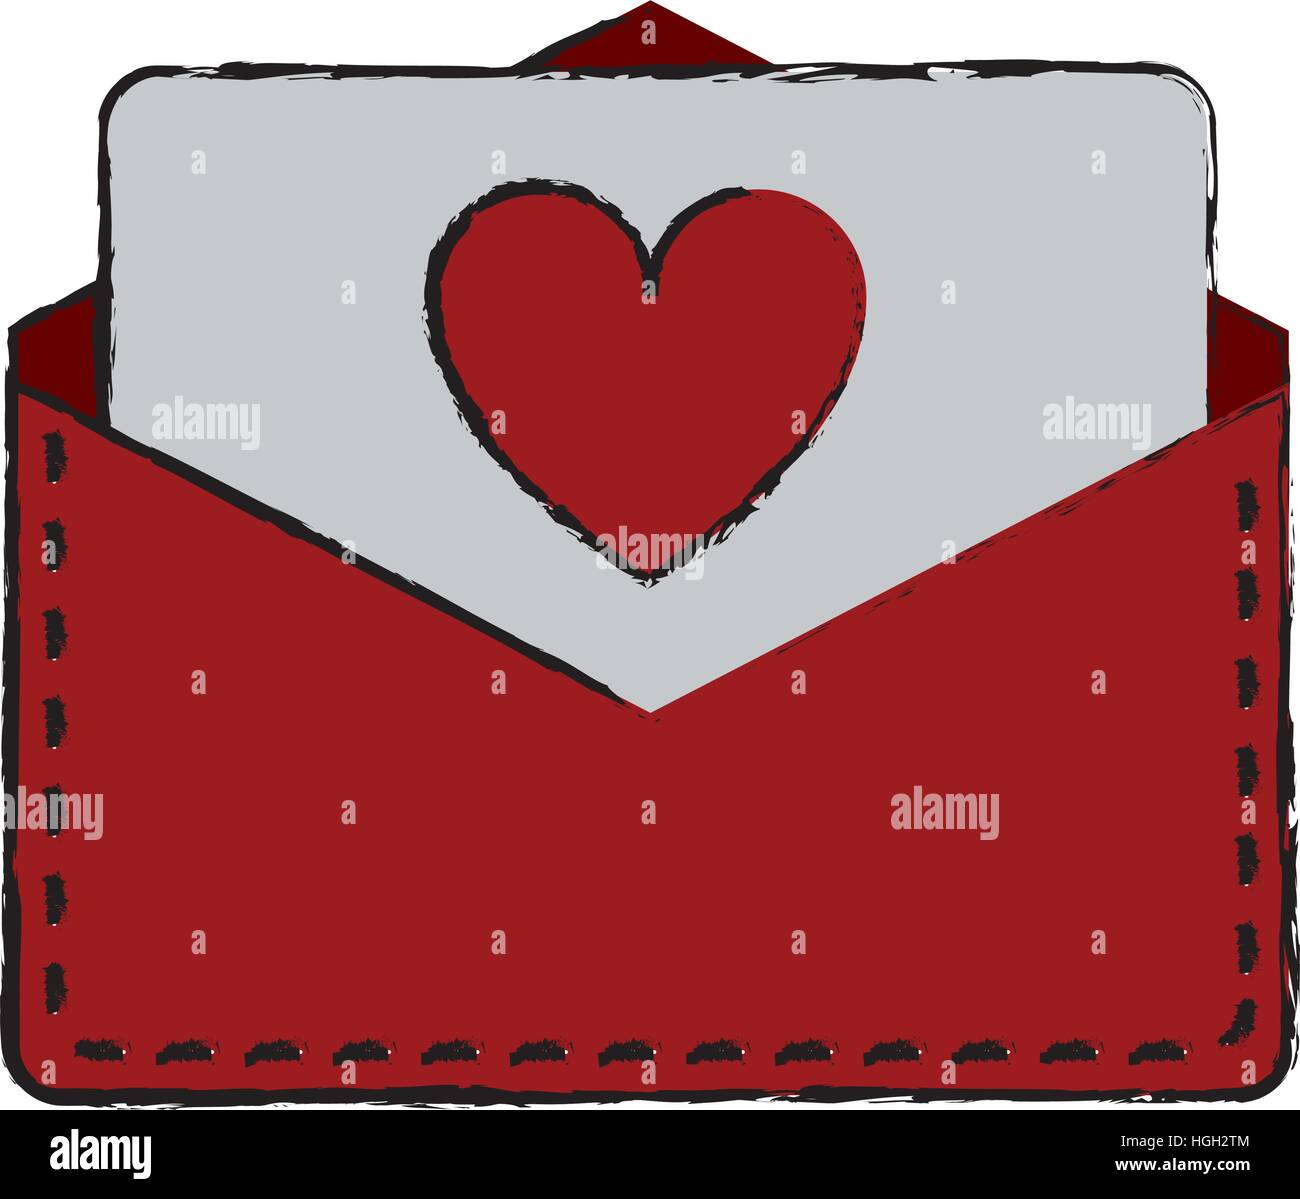 Drawing Love Heart Envelope Mail Valentine Letter Stock Vector Art